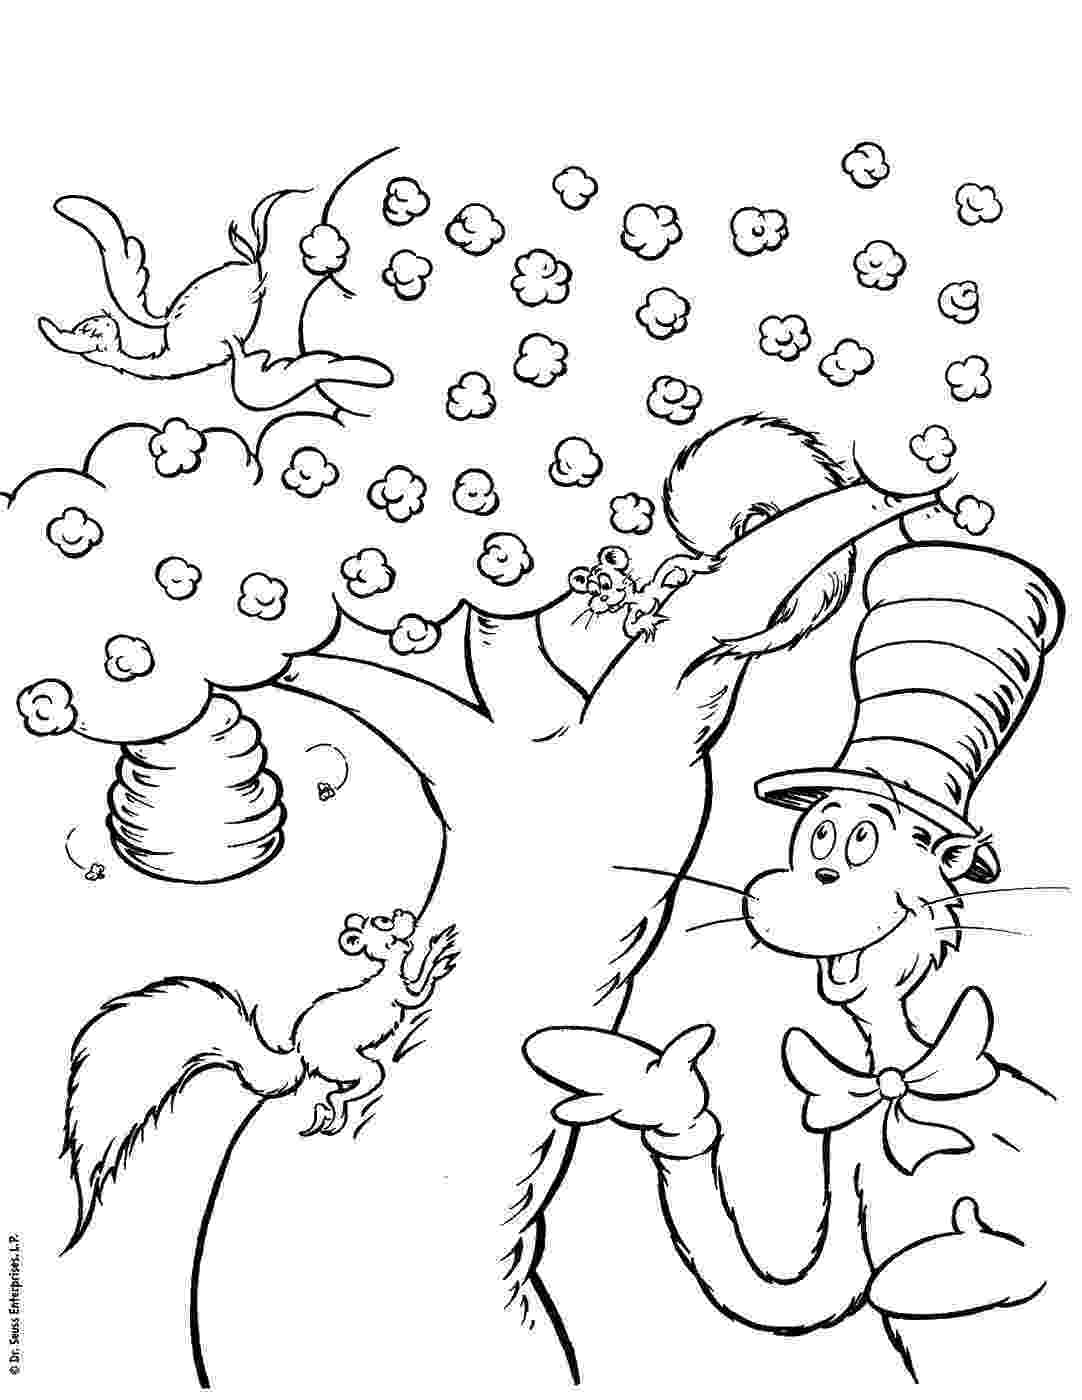 cat in the hat coloring sheets dr seuss coloring pages getcoloringpagescom sheets in the cat coloring hat